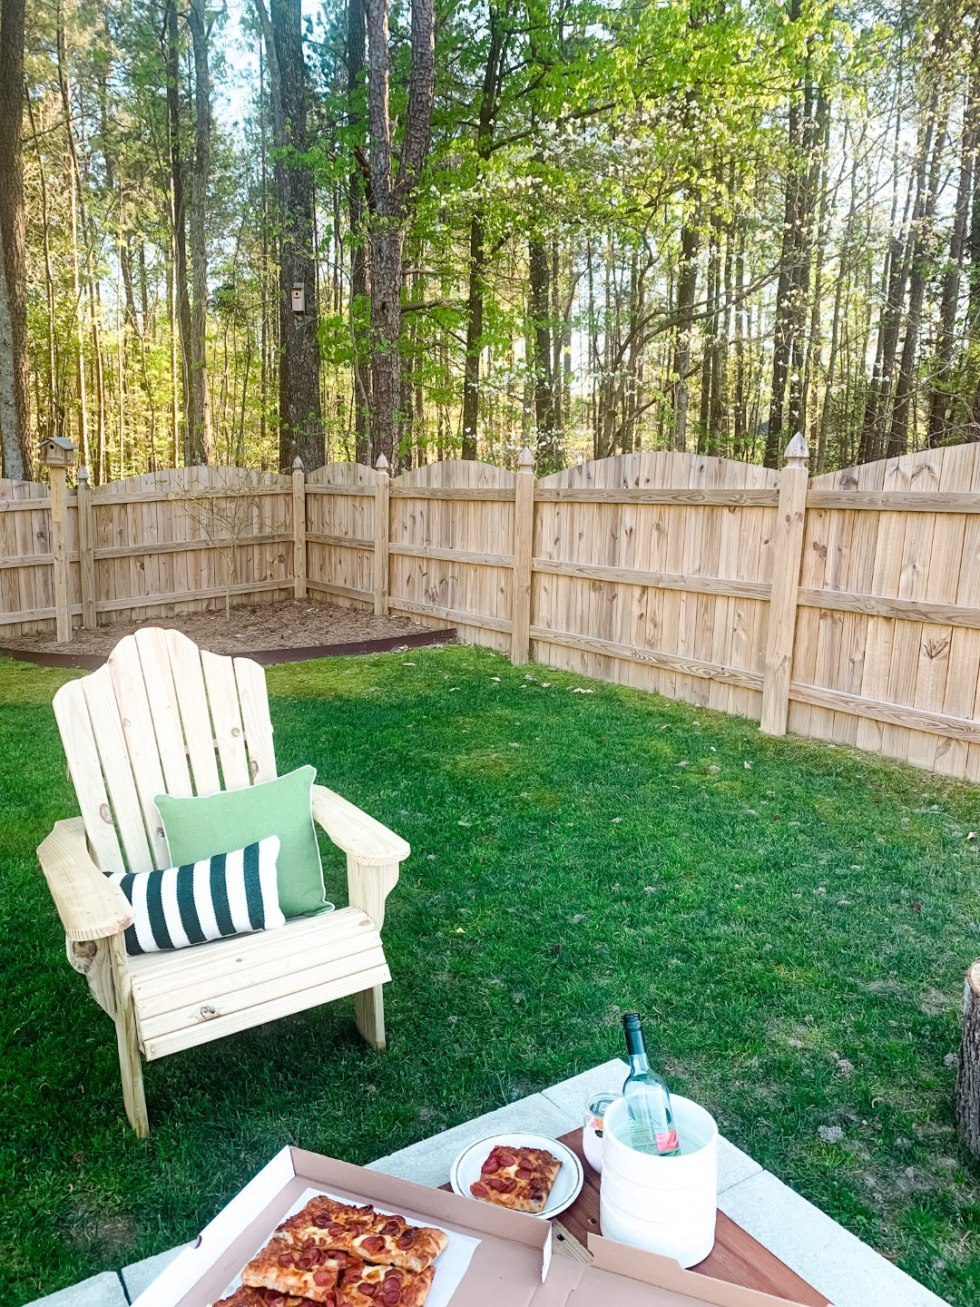 10 Backyard Picnic Essentials - I'm Fixin' To - @mbg0112 | Backyard Picnic by popular North Carolina lifestyle blog, I'm Fixin' To: image of a wooden adirondack chair with a black and white stripe pillow and a green pillow, box of pizza and a wine cooler with a bottle white wine in it.